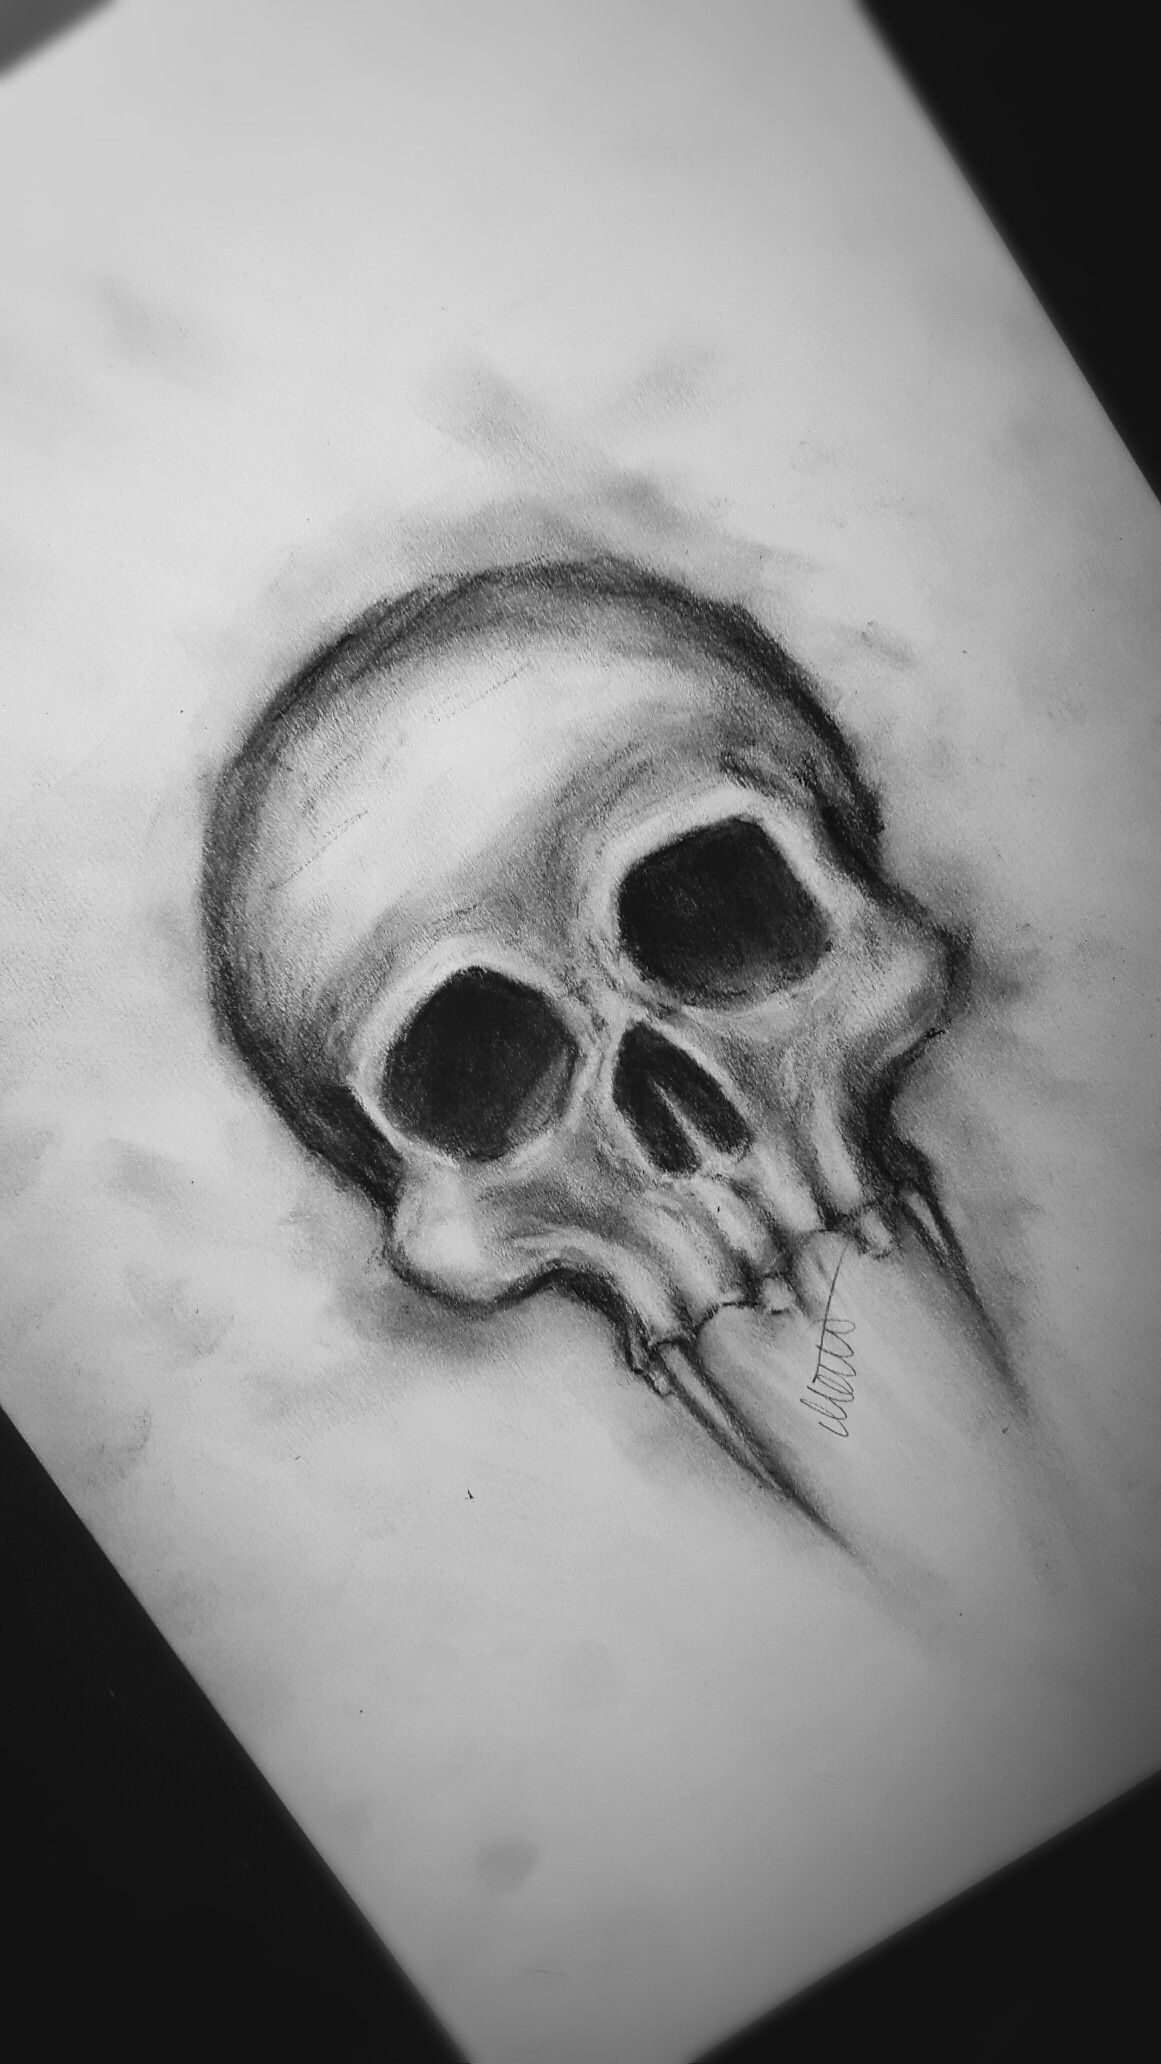 Realistic Abnormal Skull Drawing In Charcoal Skull Drawing Scary Drawings Realistic Drawings